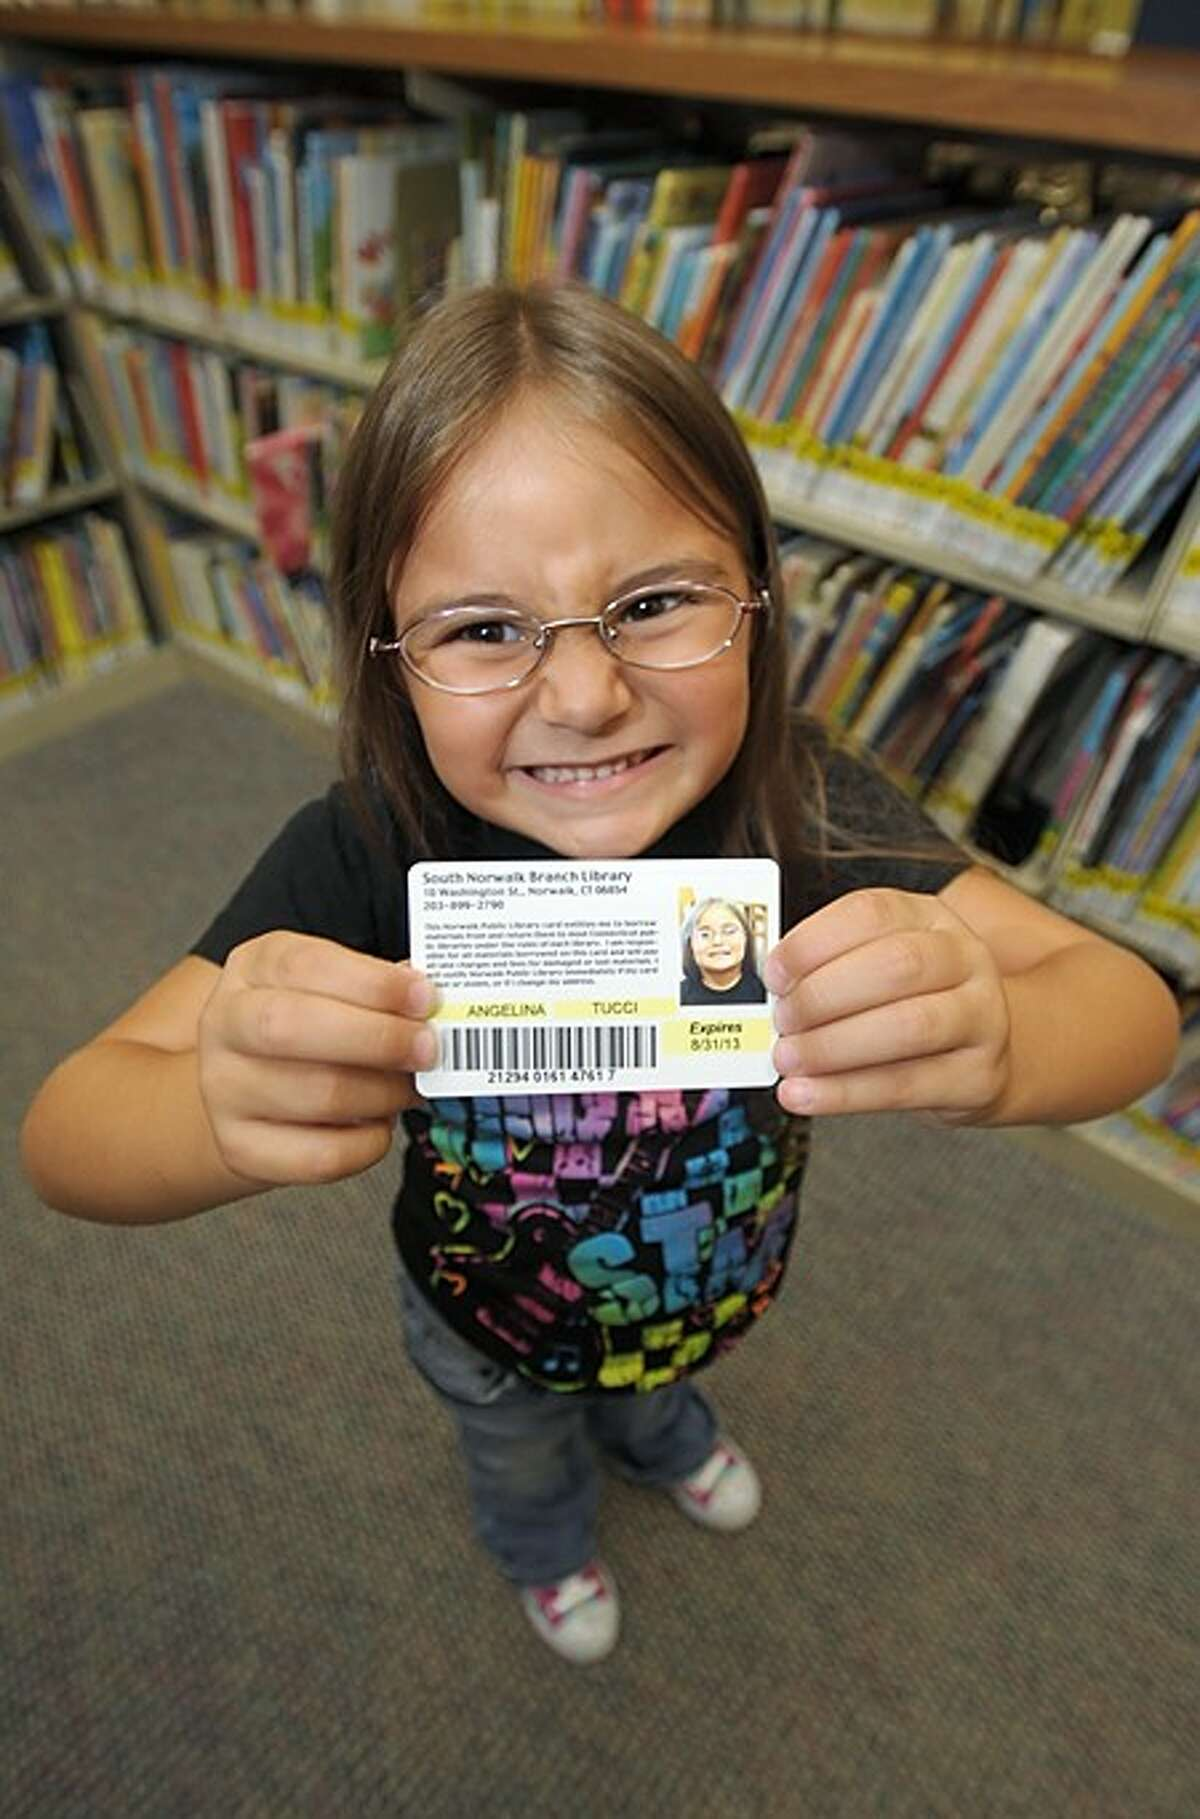 5 year old Angelina Tucci shows off her first library card she recieved at the Norwalk Public Library''s main branch Wednesday. The Norwalk Public Schools in comjuction with the library look to issue a library card for every student in the school system. Hour photo / Erik Trautmann